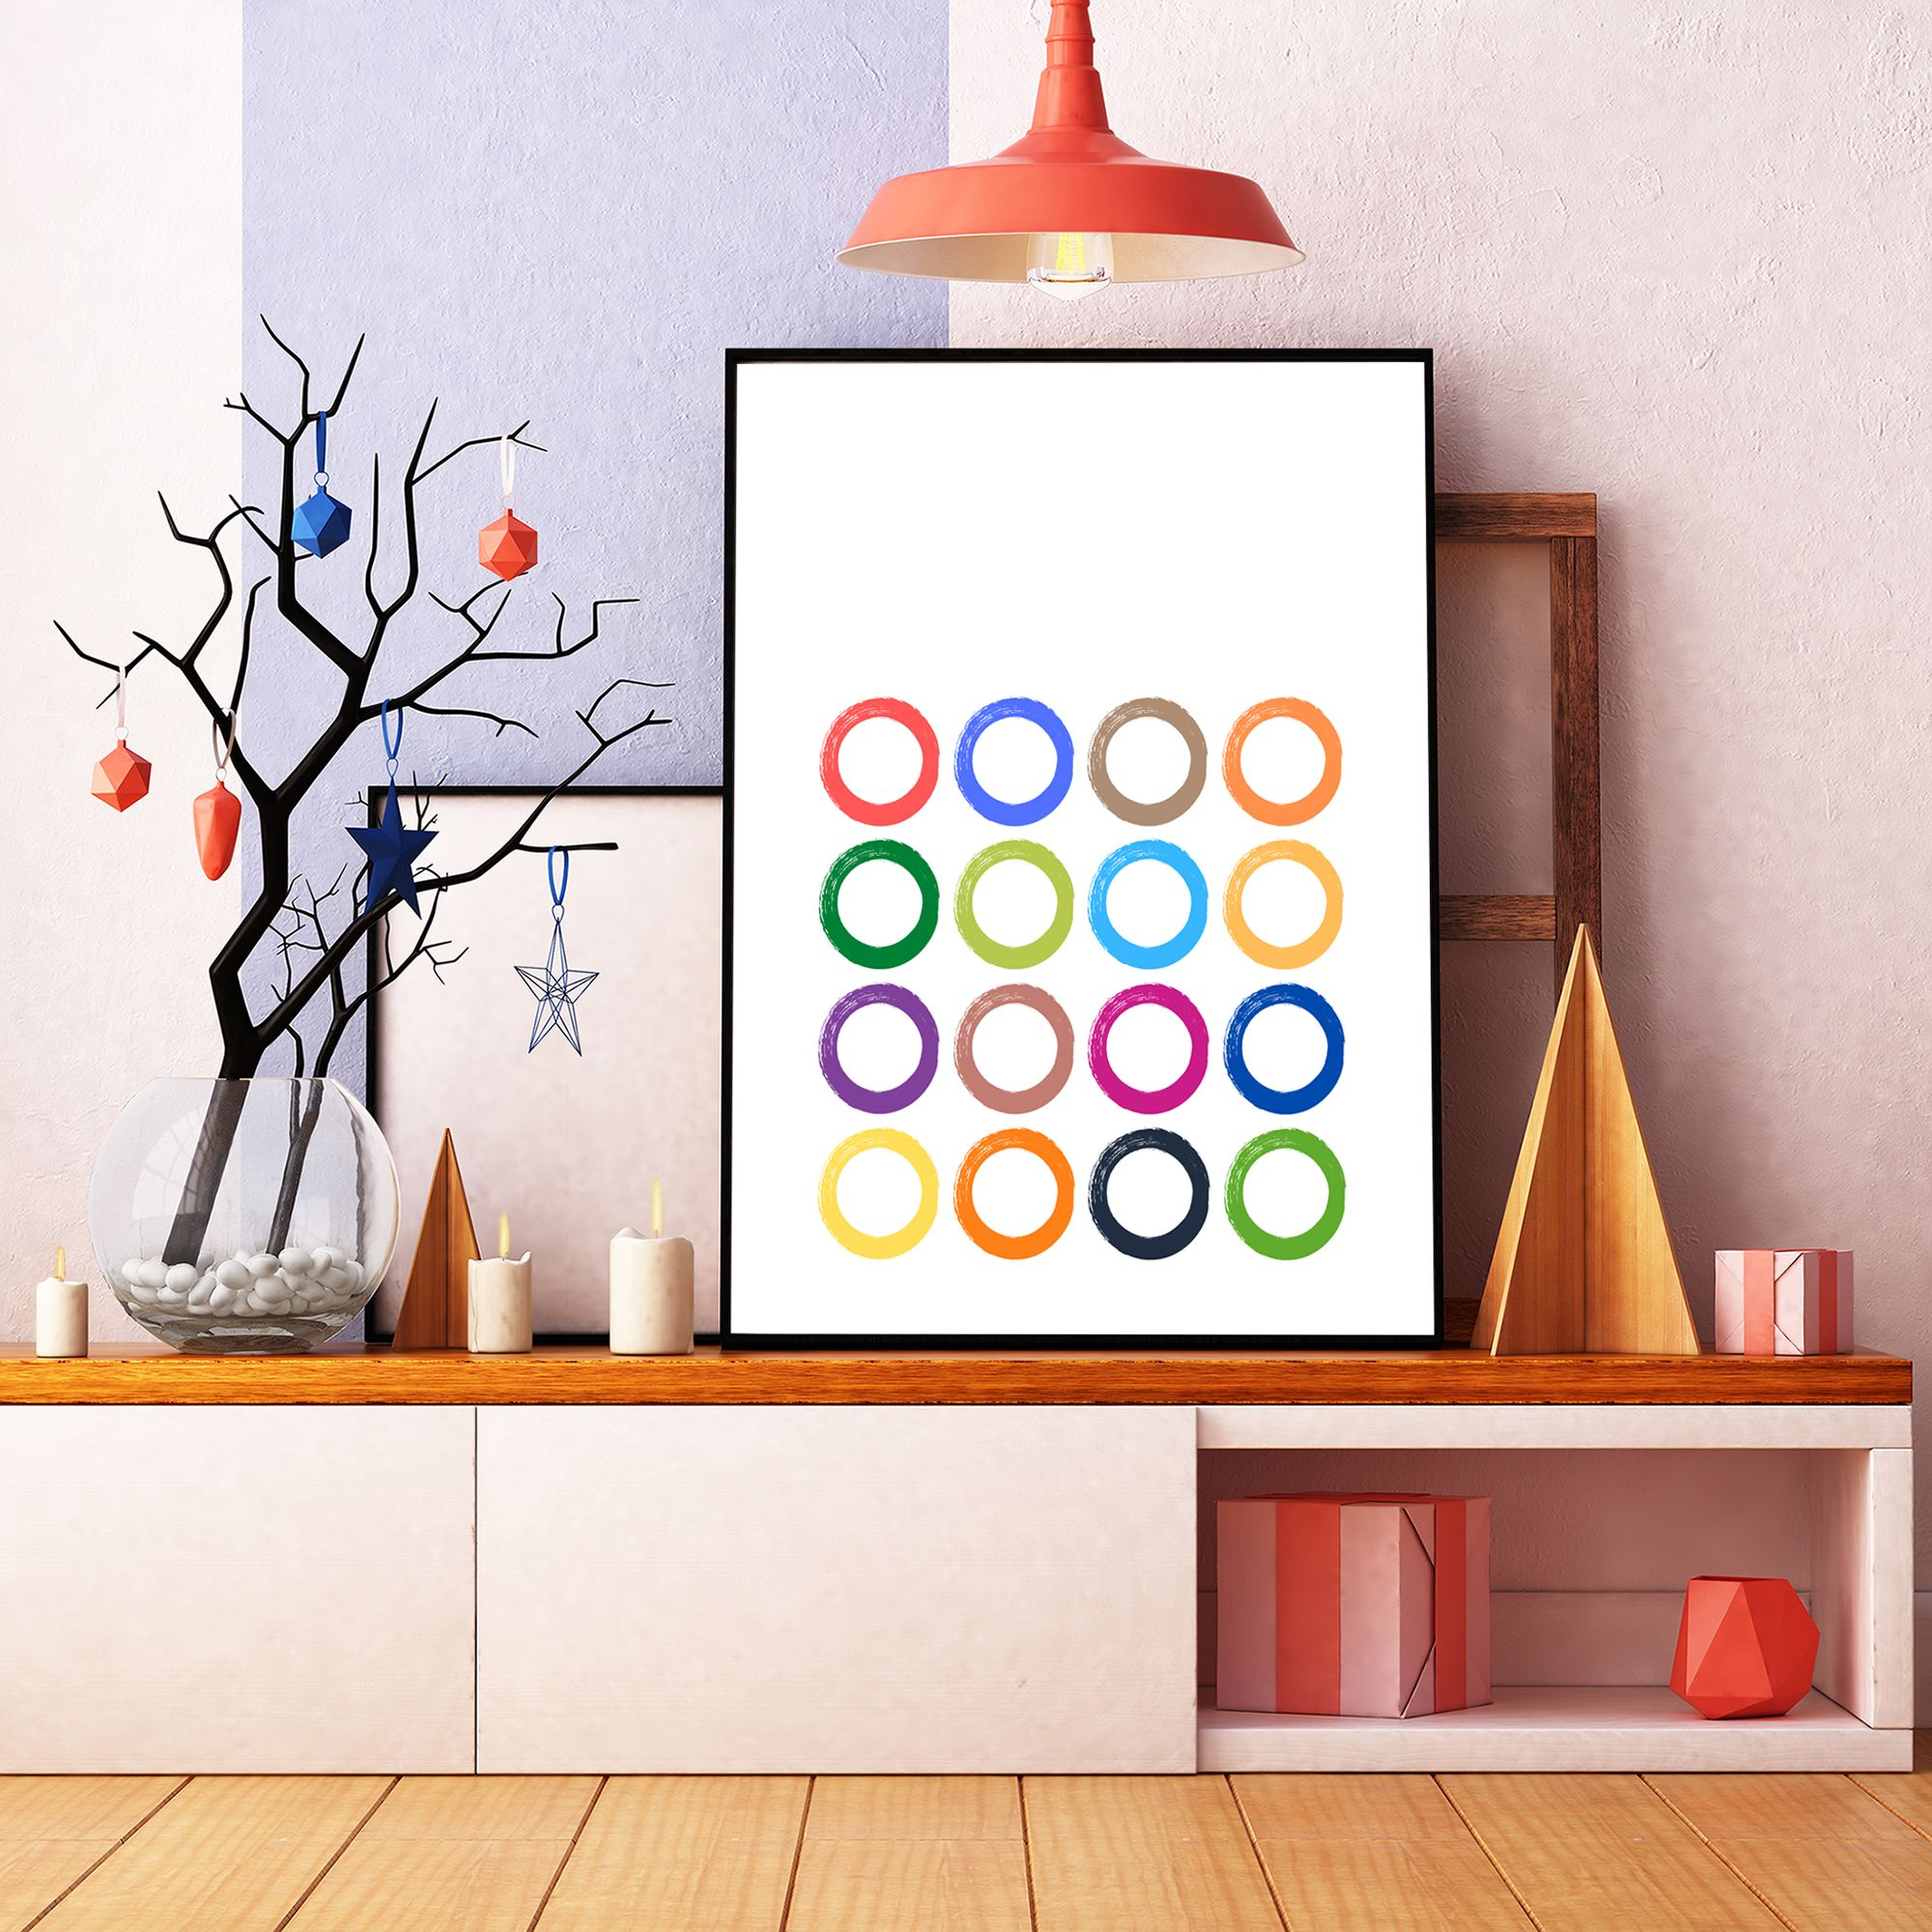 Colorful Circles Abstract Art Geometric Poster Abstract Etsy In 2020 Printable Wall Art Geometric Poster Modern Wall Decor